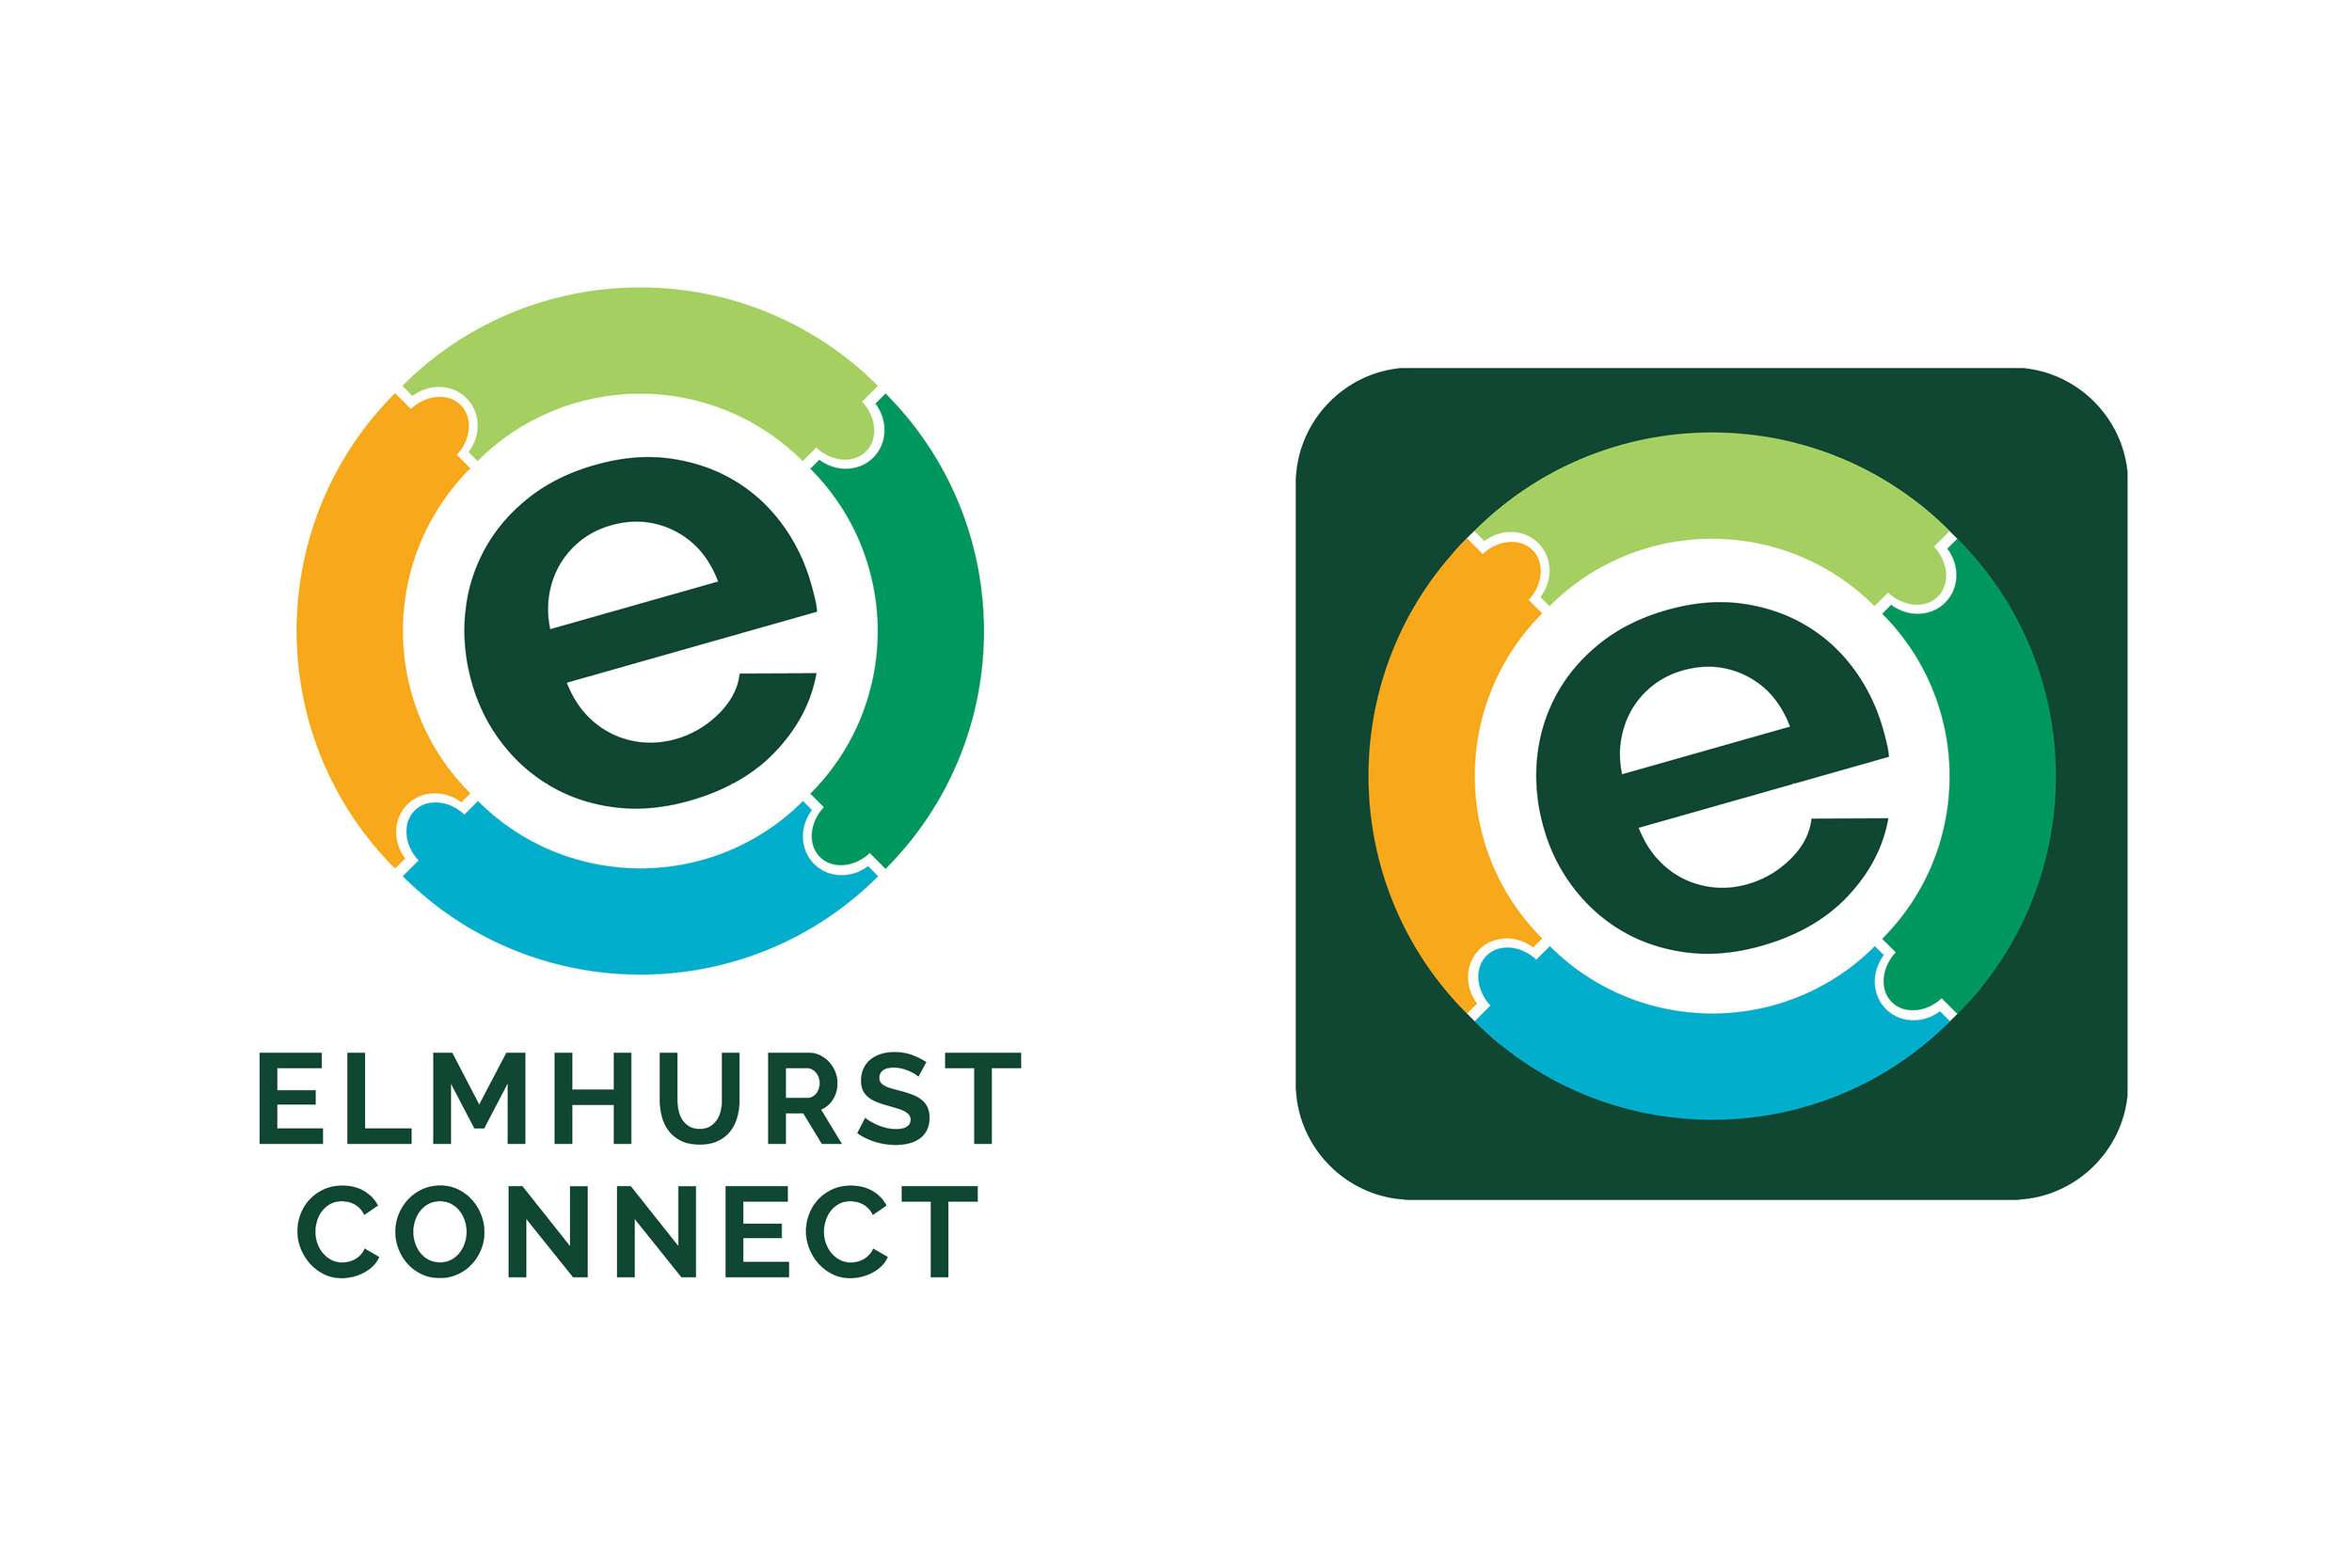 Elmhurst Connect - Elmhurst Connect is an app for all residents to get information, stay up to date on events, and communicate with town officials. It was important to create a truly unique badge app icon and symbol that would represent this app across all platforms. View the gallery below to see the creative process from sketchbook to final logo.